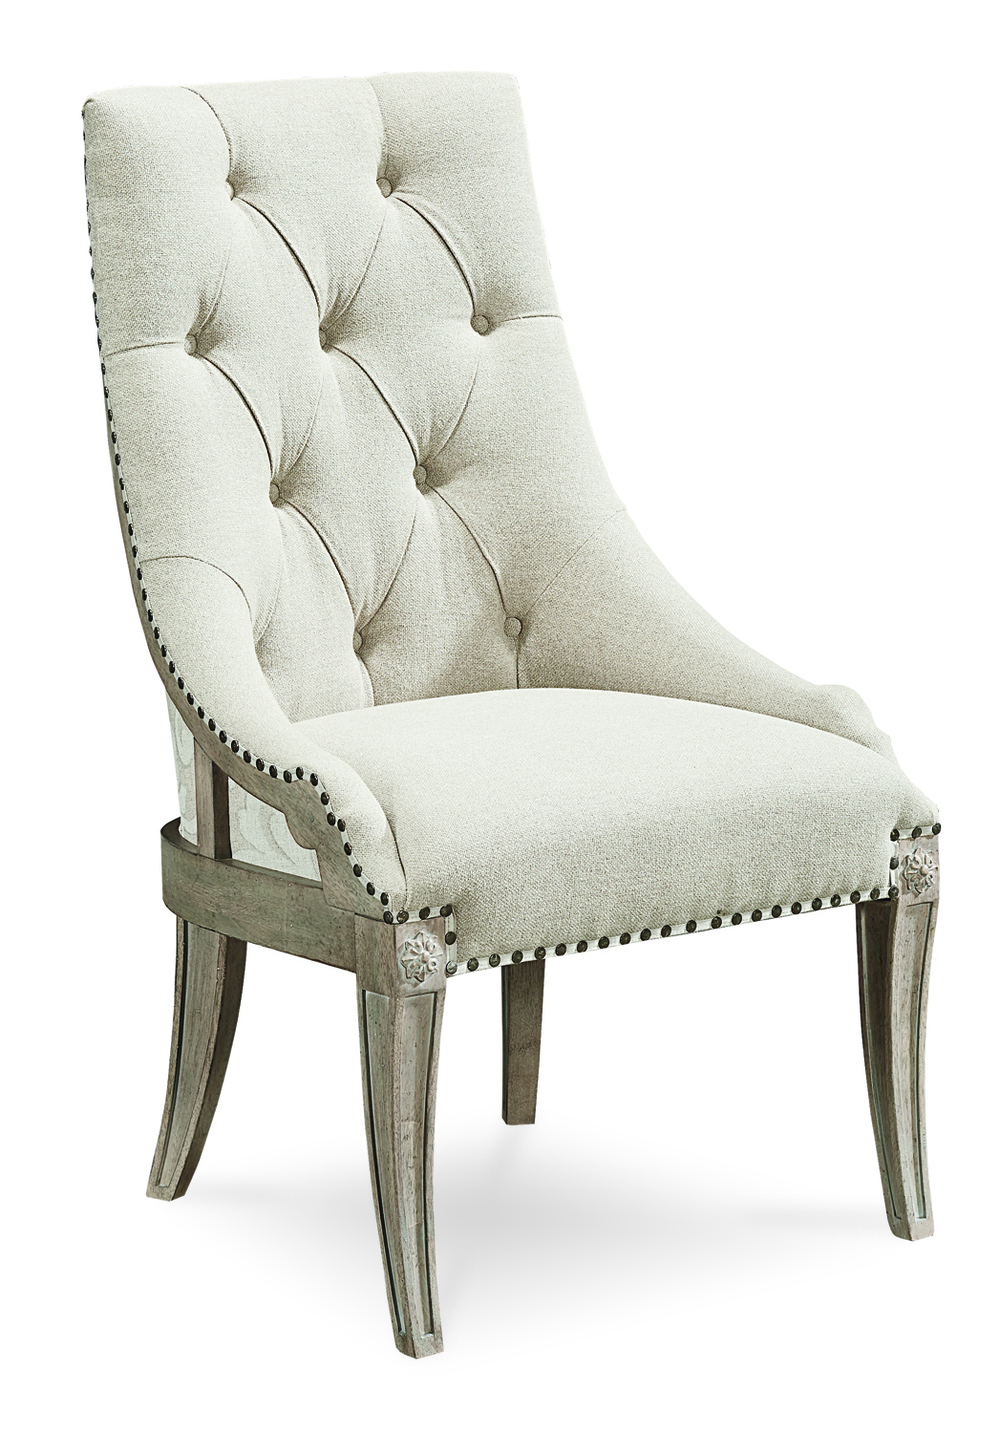 A.R.T. Furniture - Reeves Host Chair